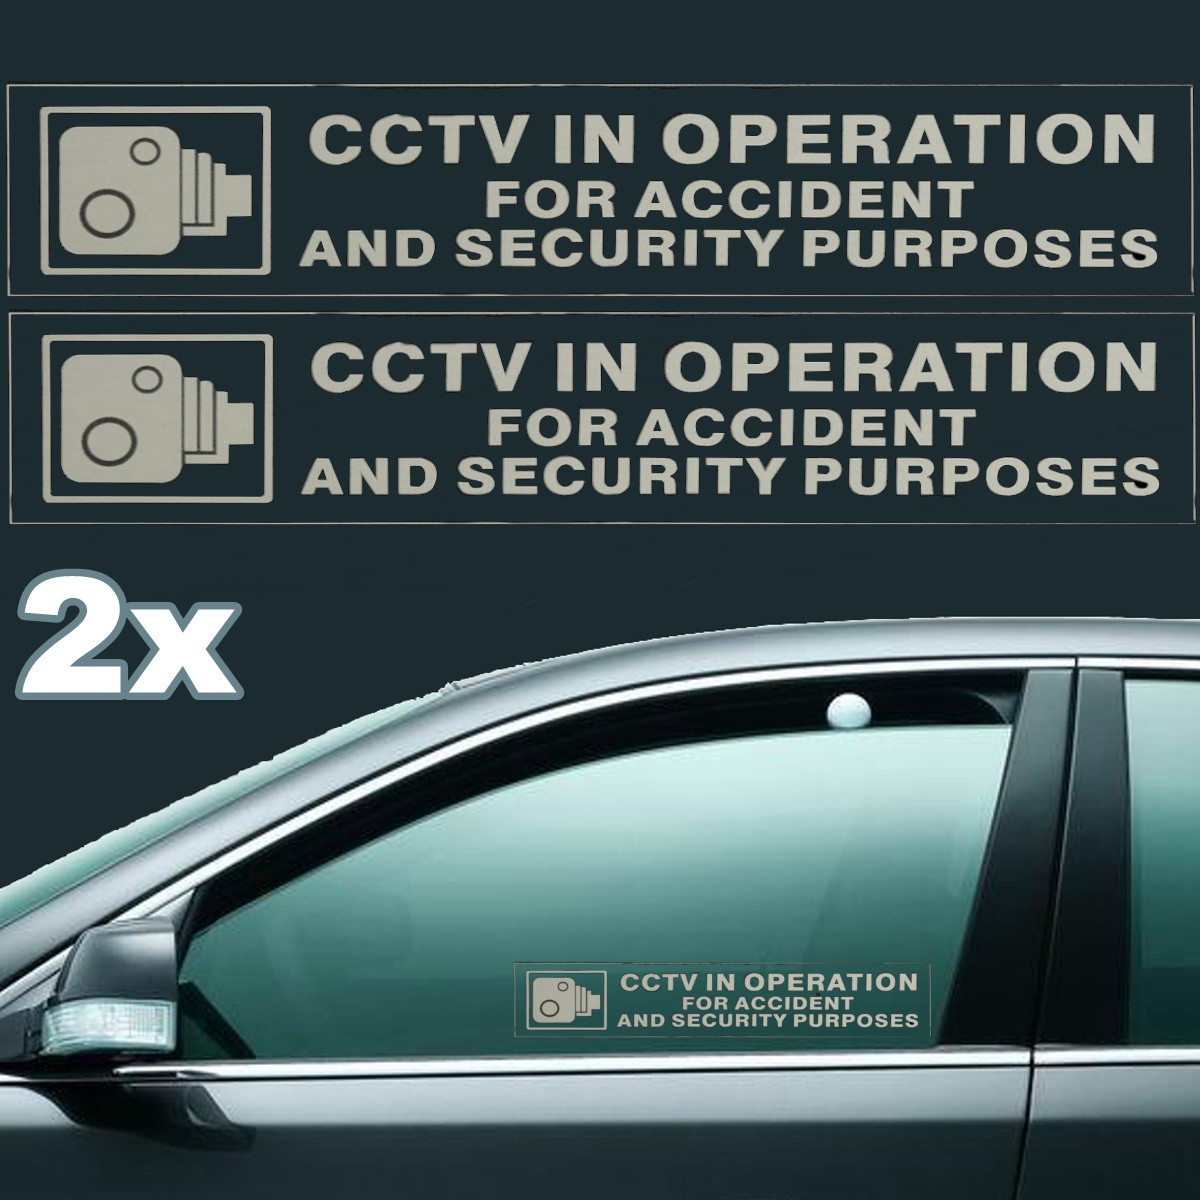 2pcs CCTV In Operation For Accident Security Purposes Self-adhensive Stickers Car Van Bus 198mmx40mm